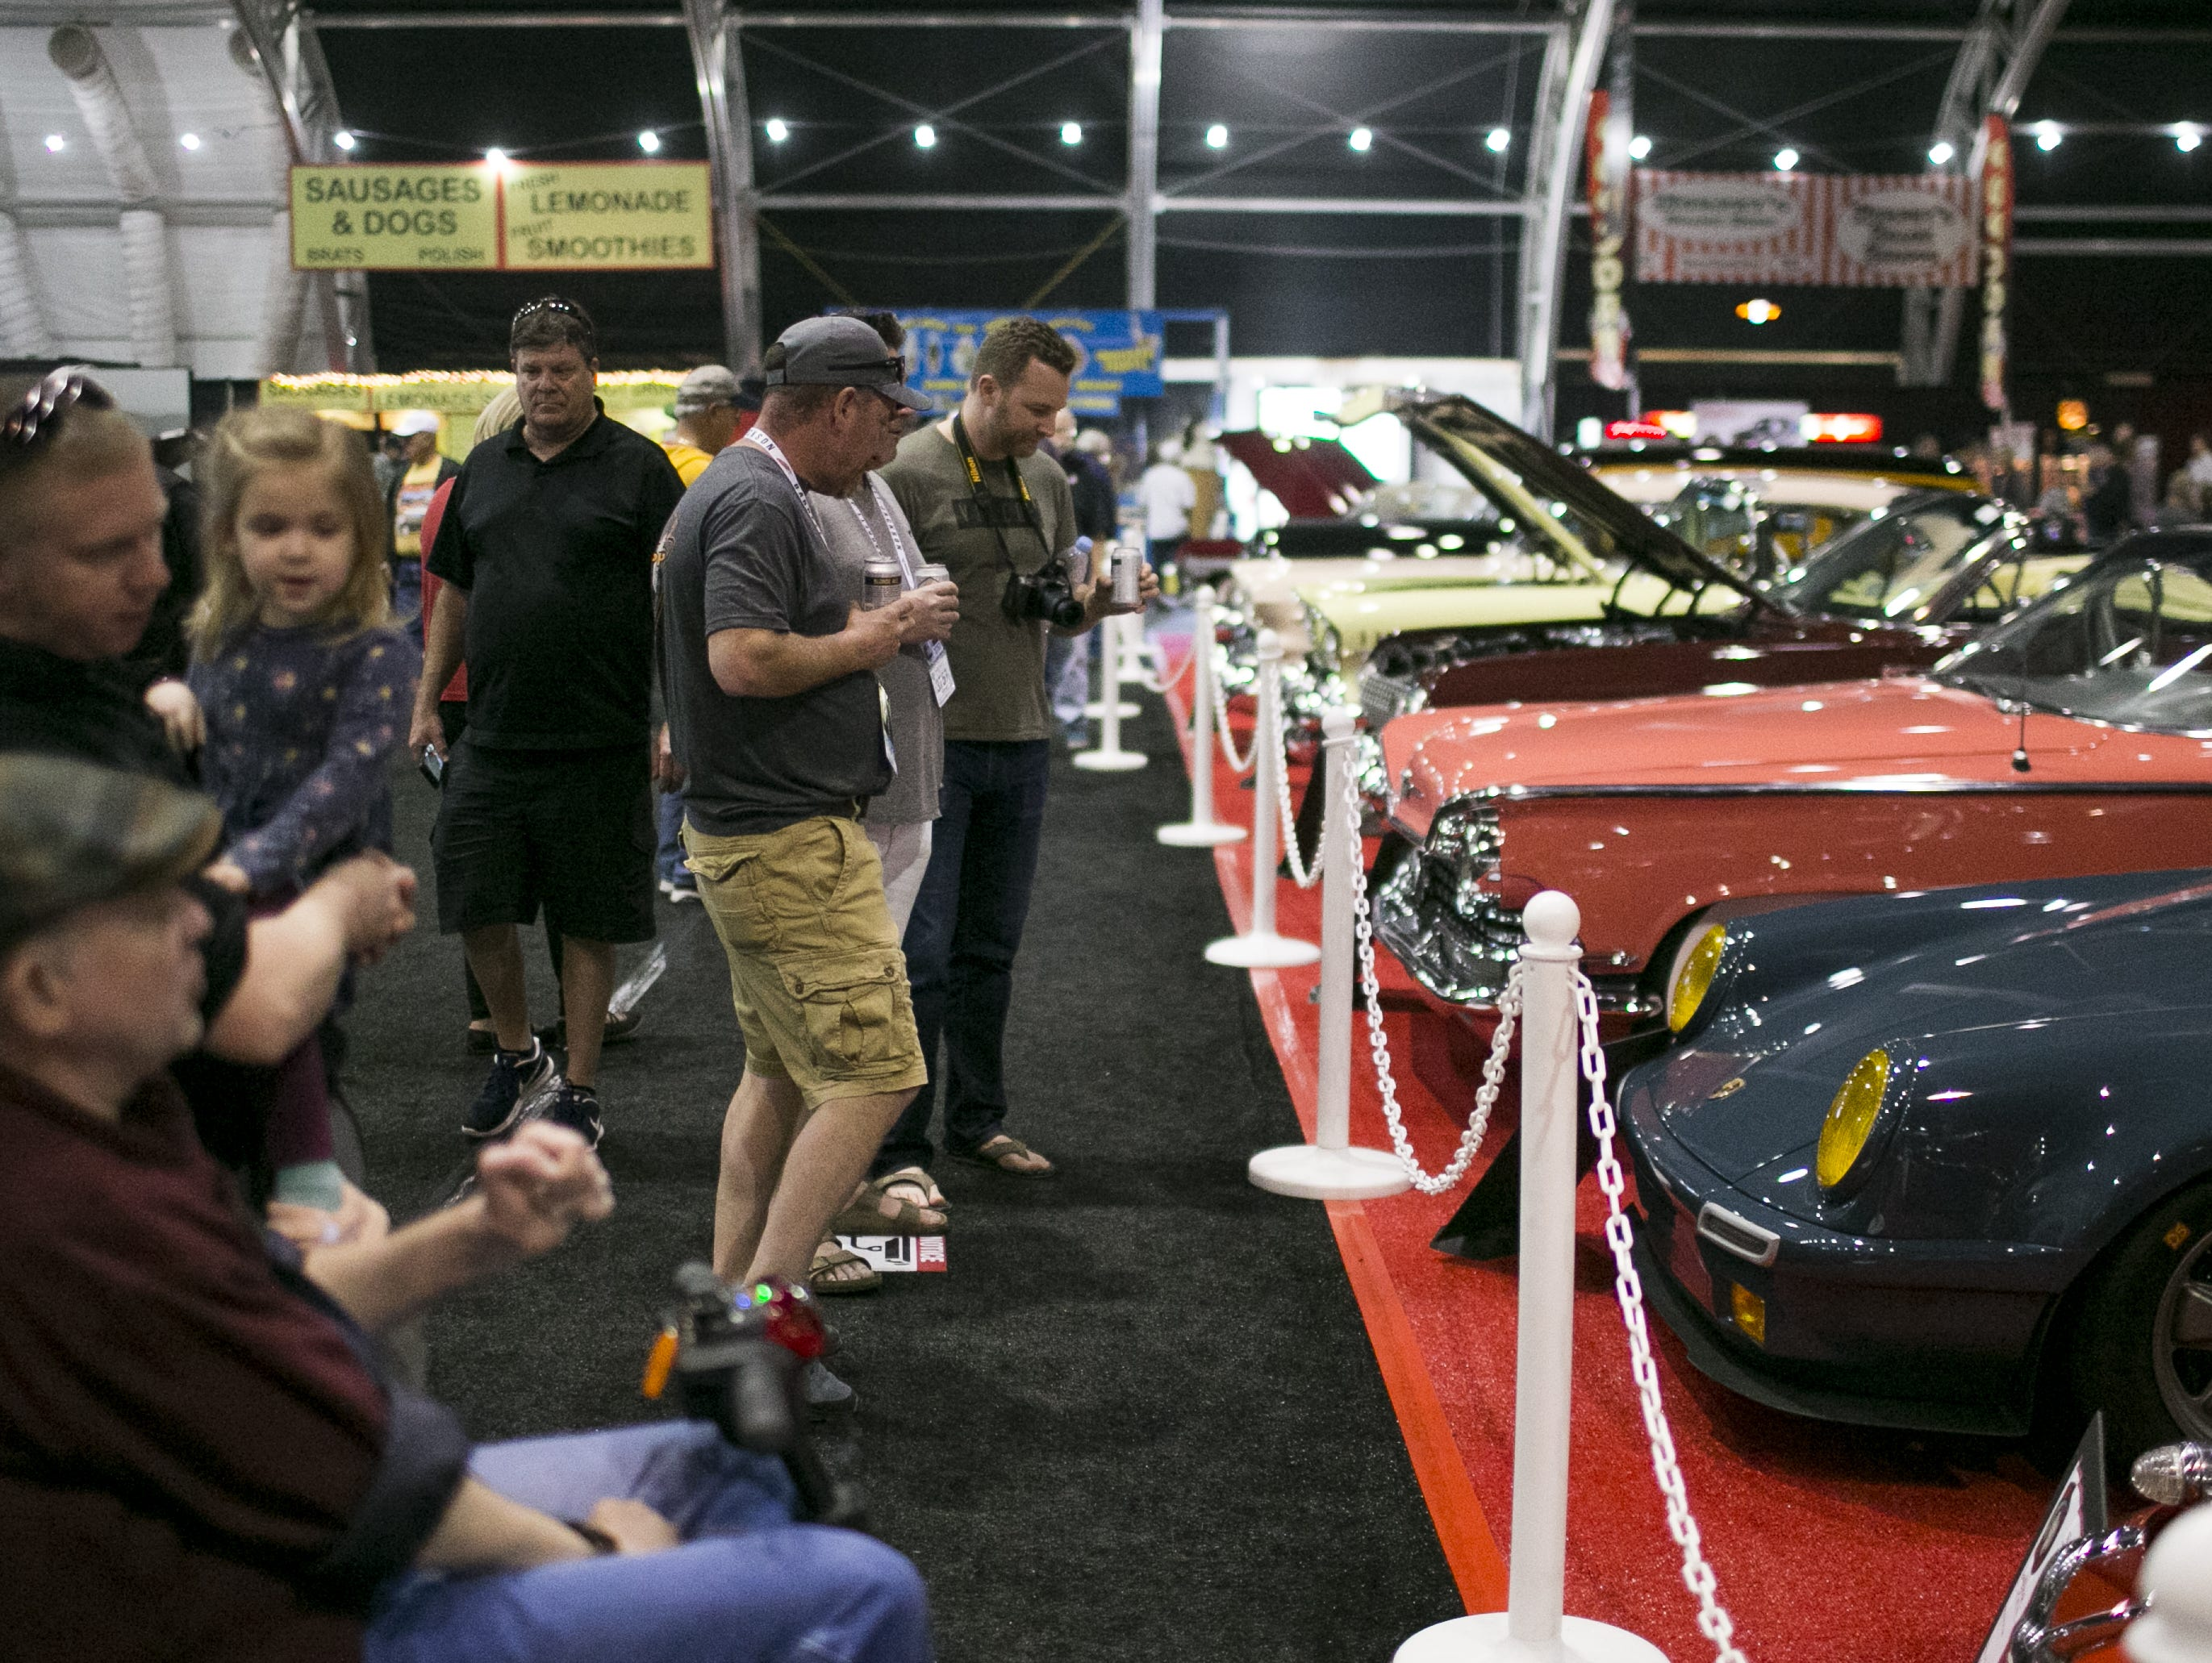 Spectators take photos of and admire classic cars at the Barrett-Jackson Car Auction at WestWorld in Scottsdale, Arizona, on Jan. 16, 2019.